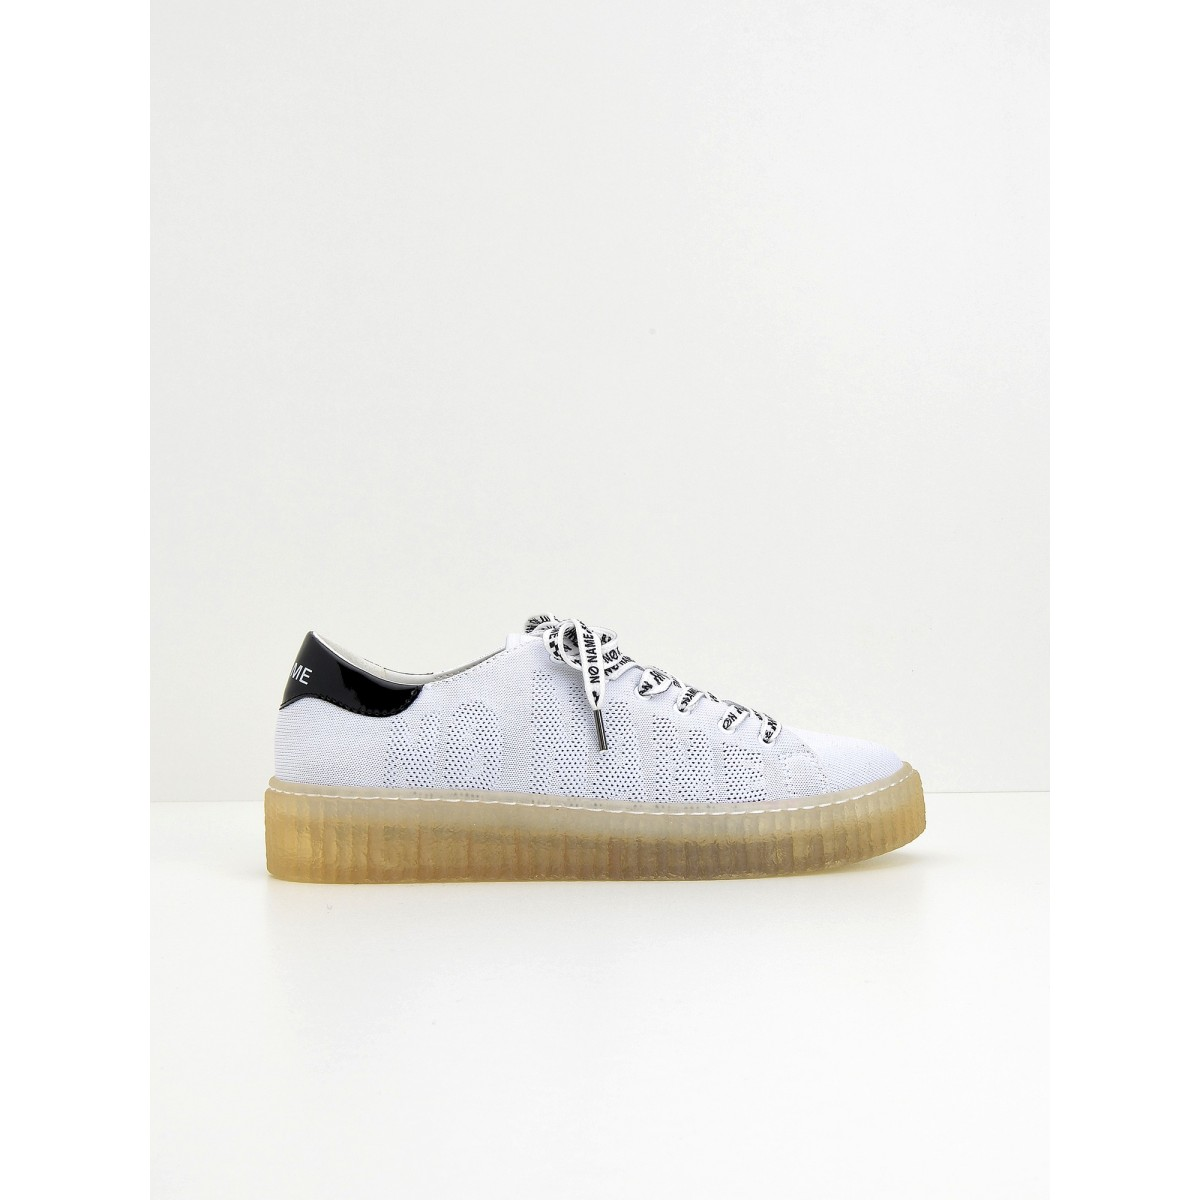 No Name Picadilly Soft - Flex/Patent - White/Black